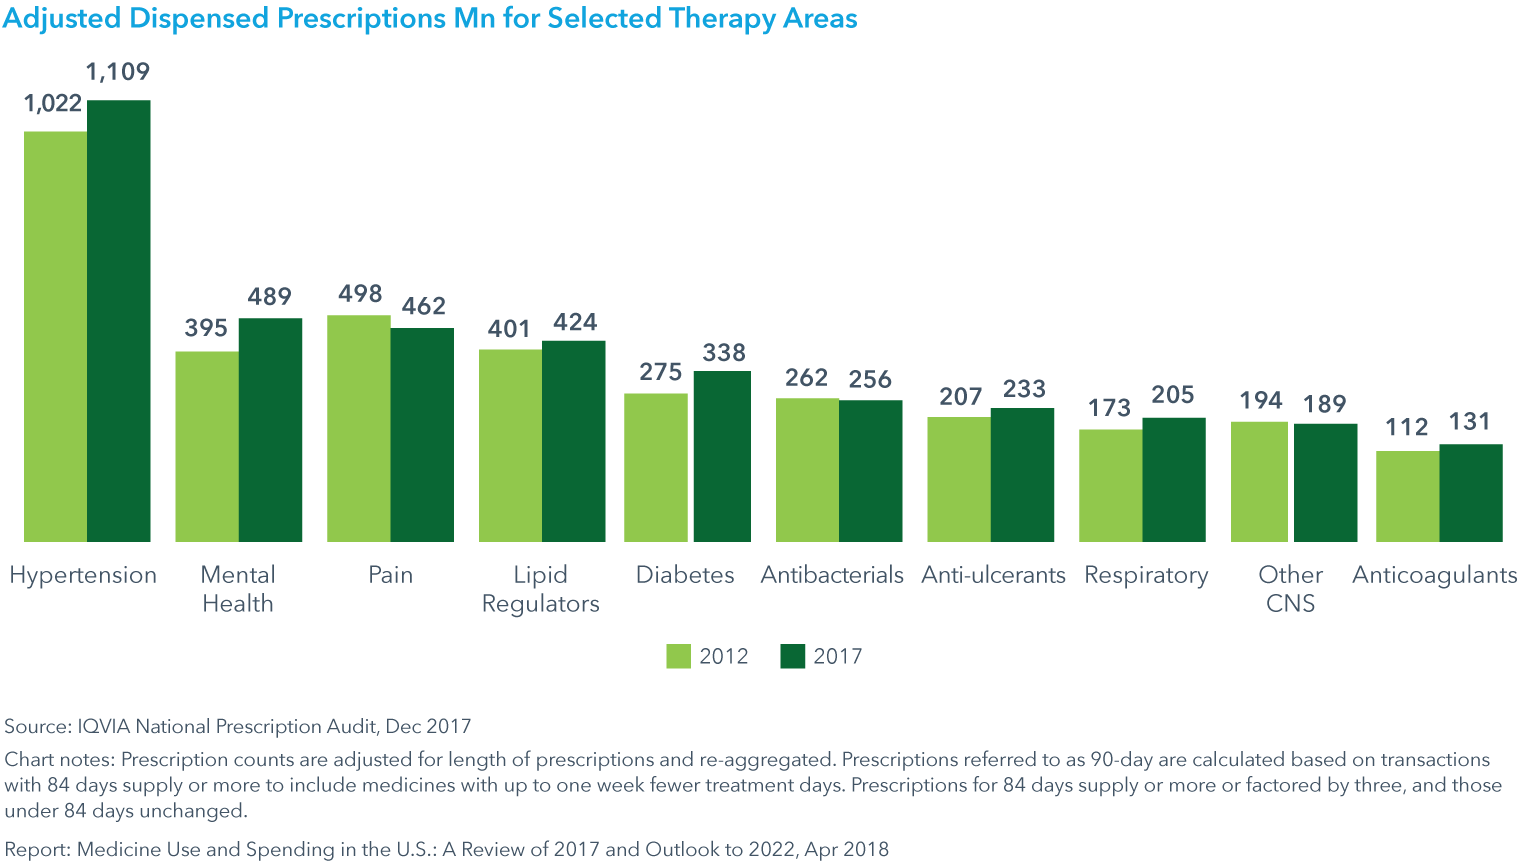 Chart 13: Adjusted Dispensed Prescriptions Mn for Selected Therapy Areas